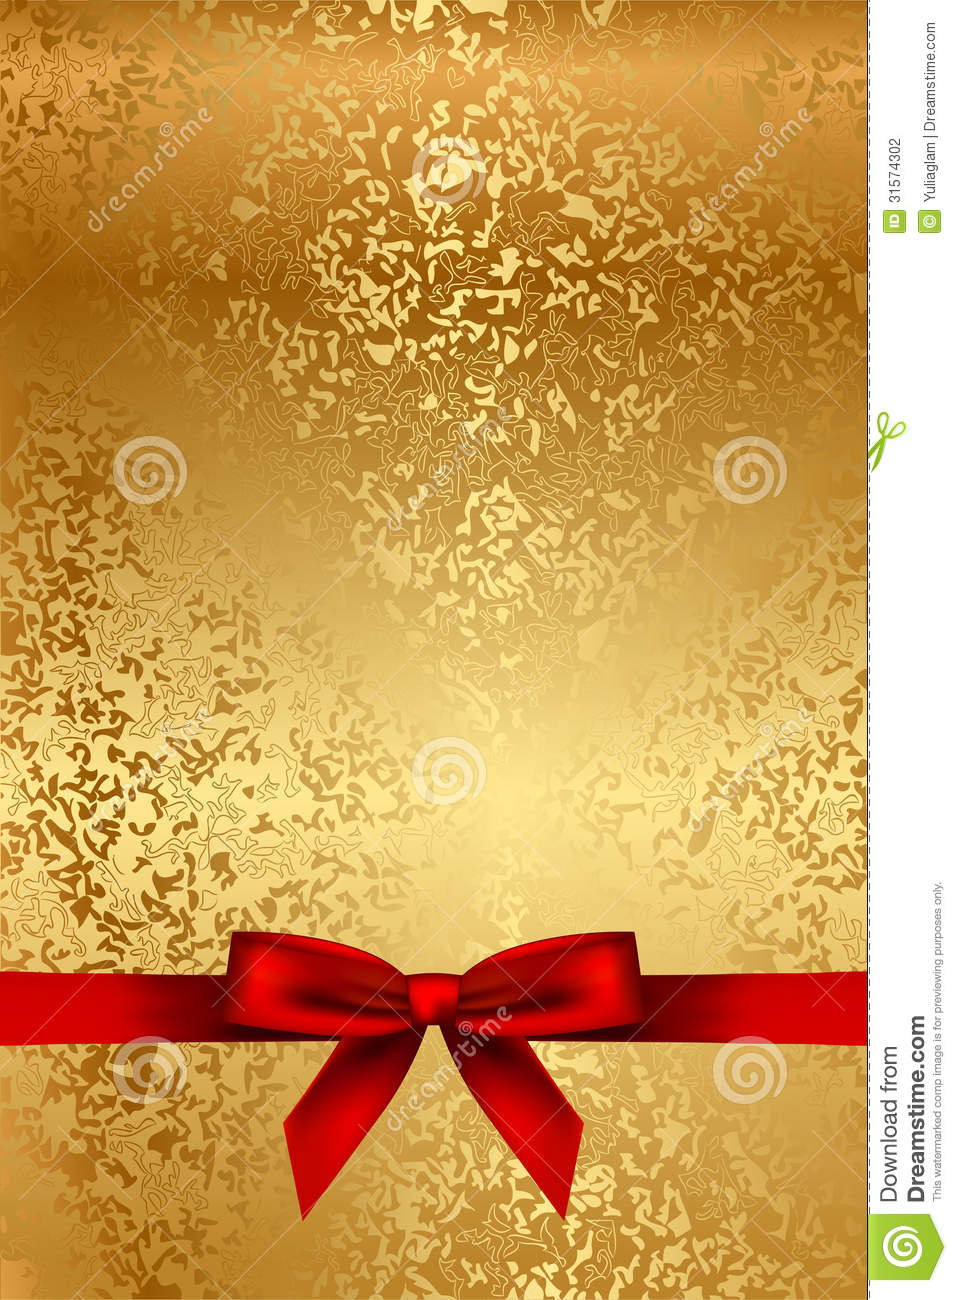 Gold Texture With Red Bow Stock Vector Illustration Of